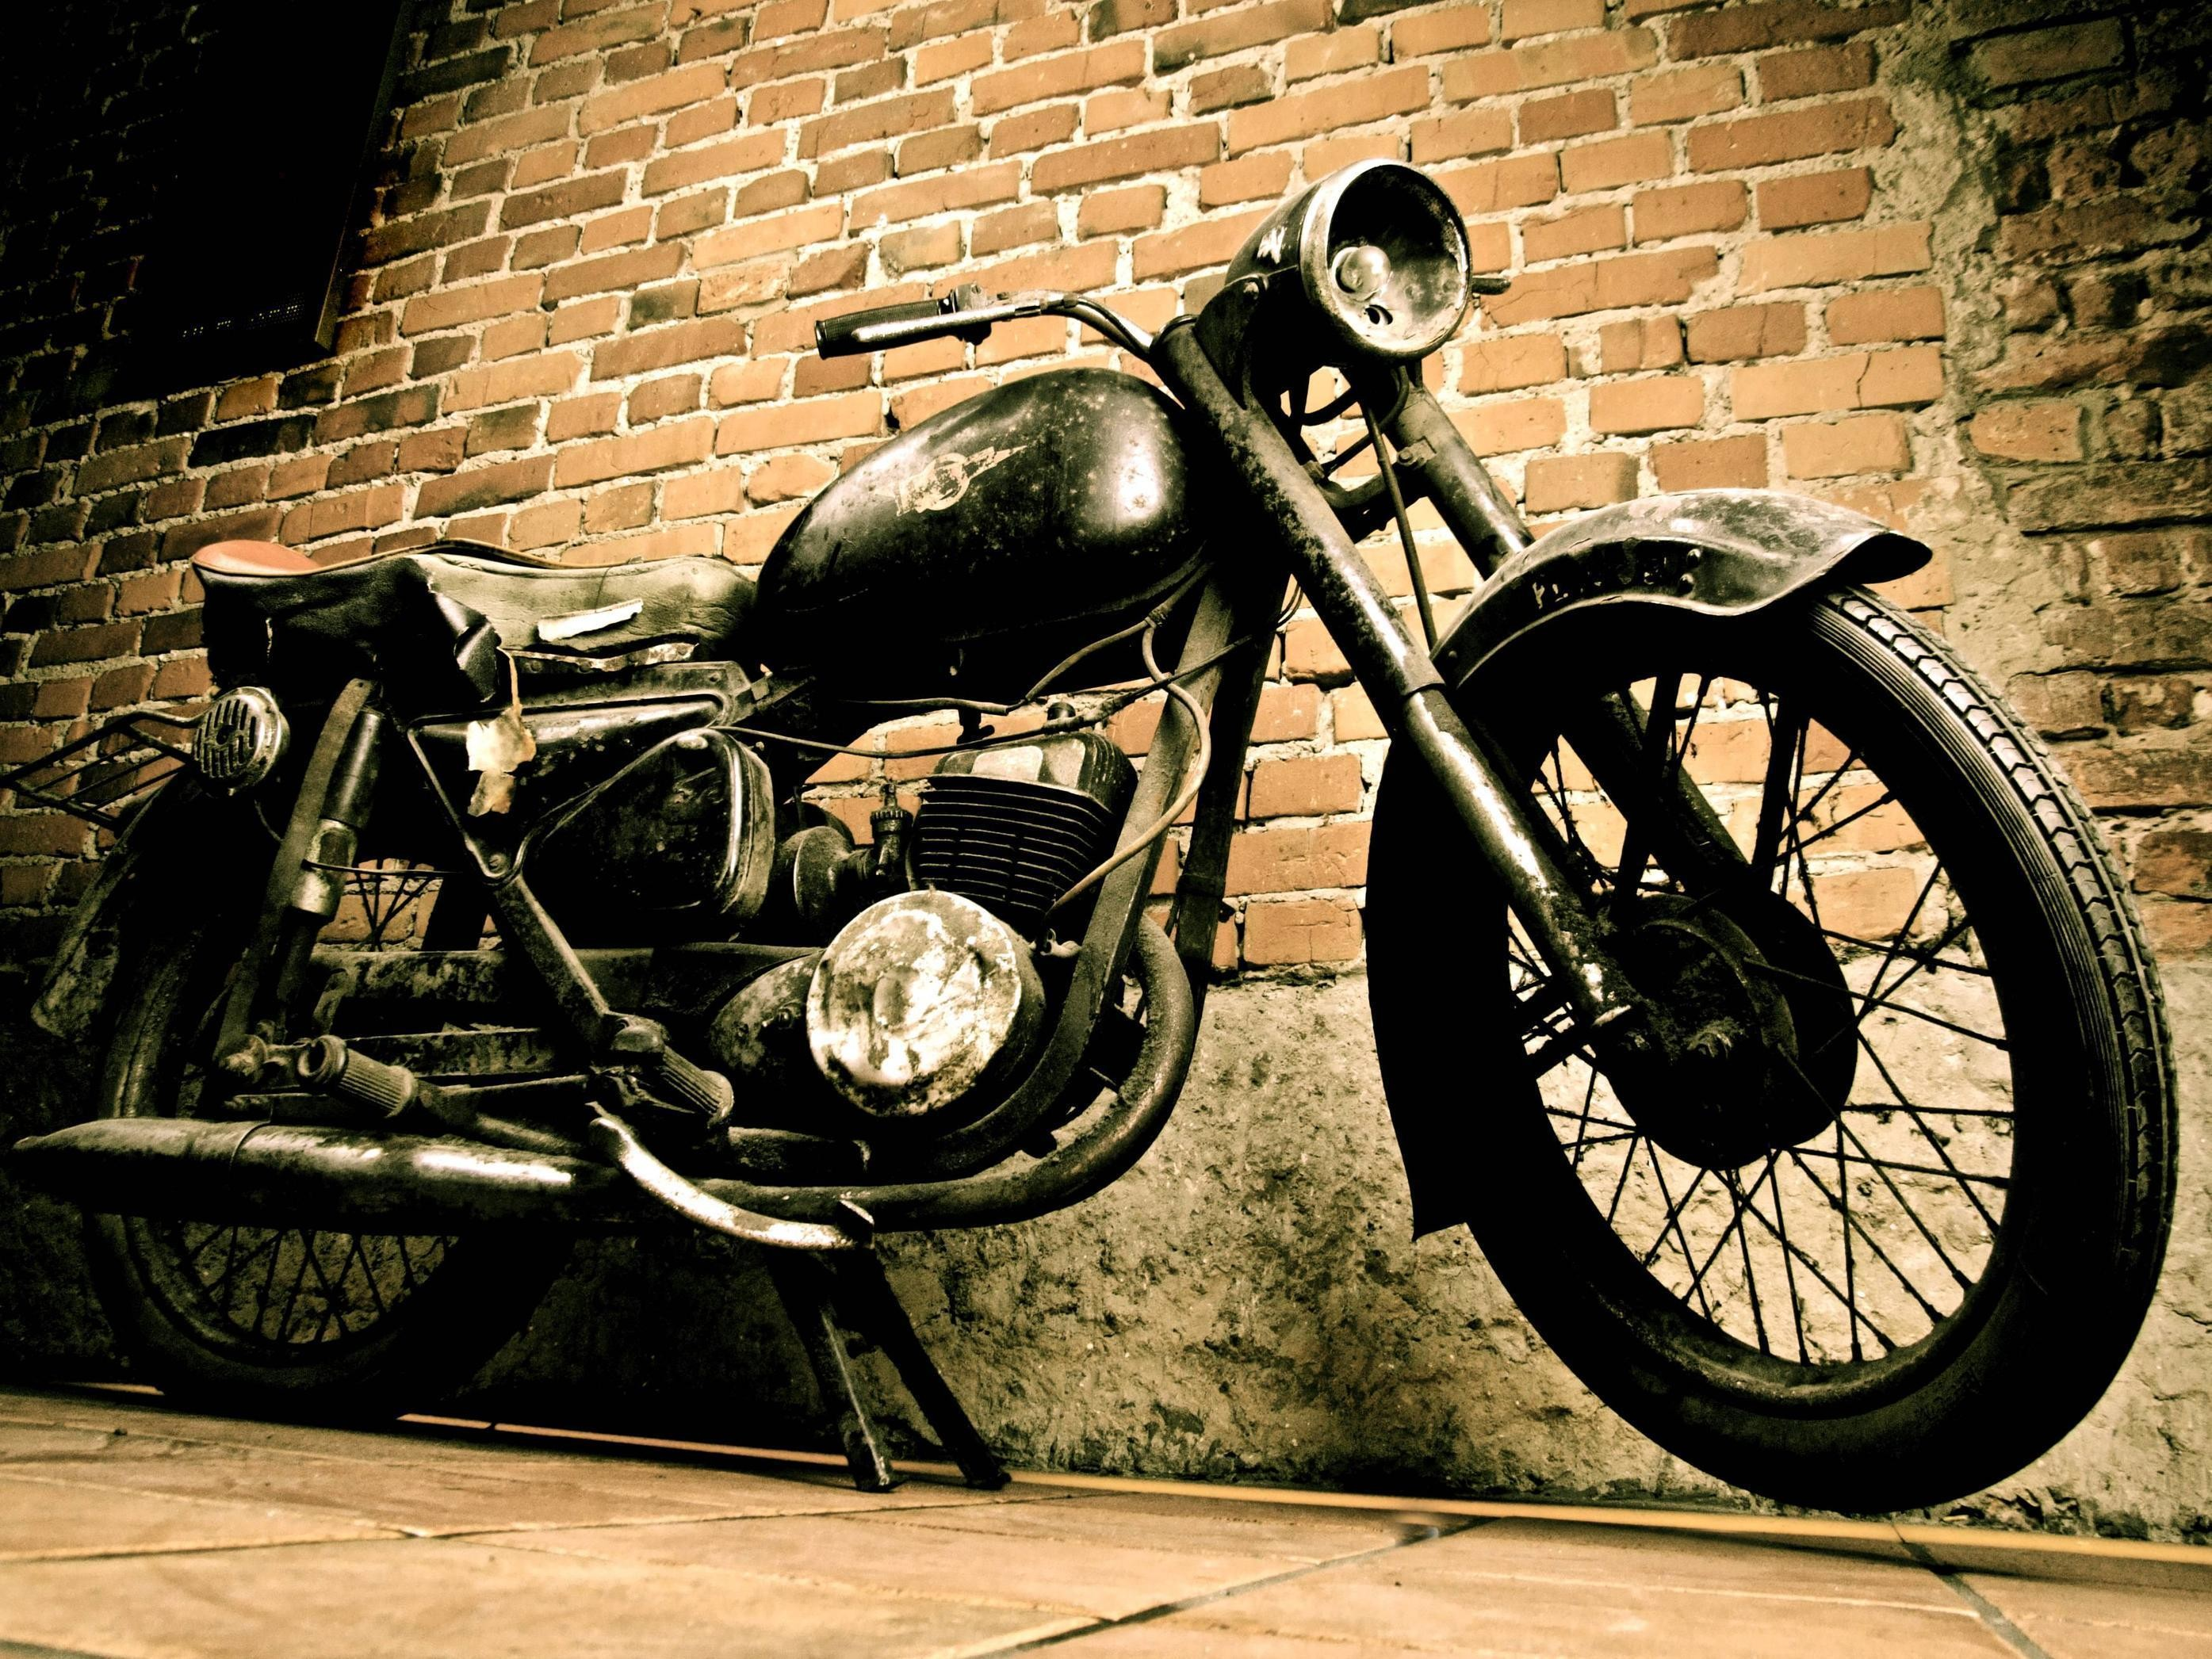 Res: 2790x2093, Old Motorcycles   MotoCircle